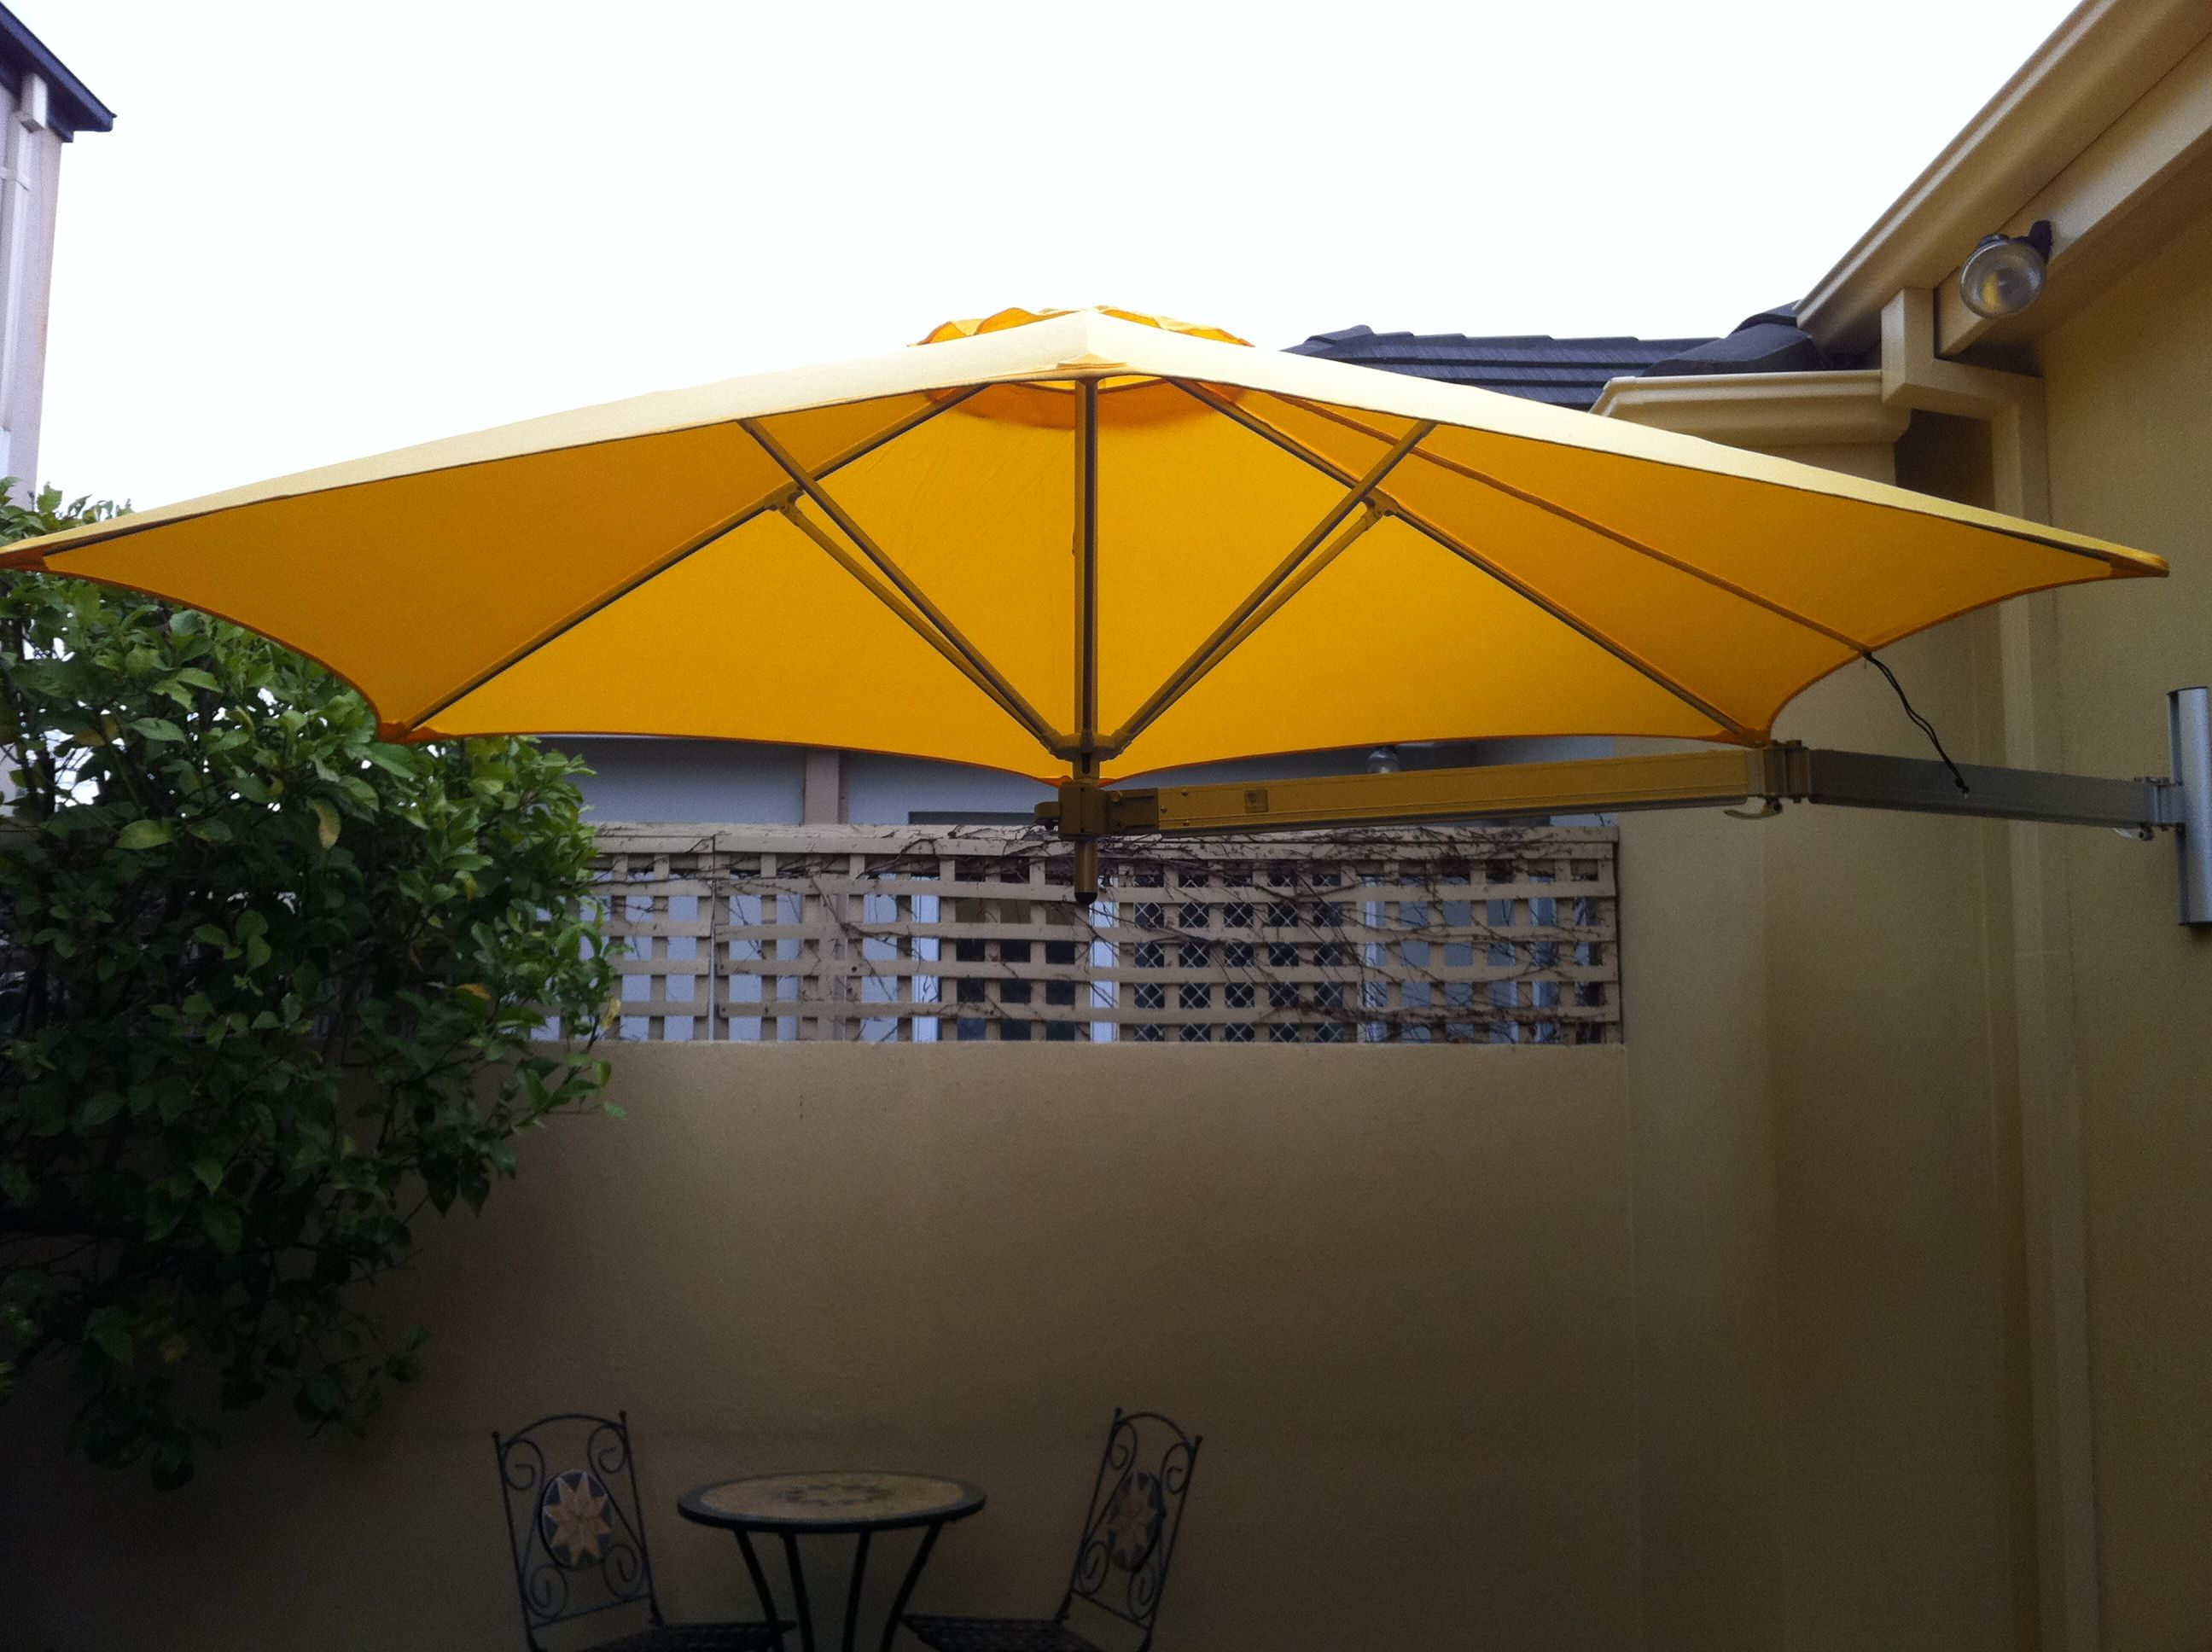 The Best Choice For Shading A Courtyard The Paraflex Wall Mounted Umbrella Shade Umbrellas Umbrella Wall Mount